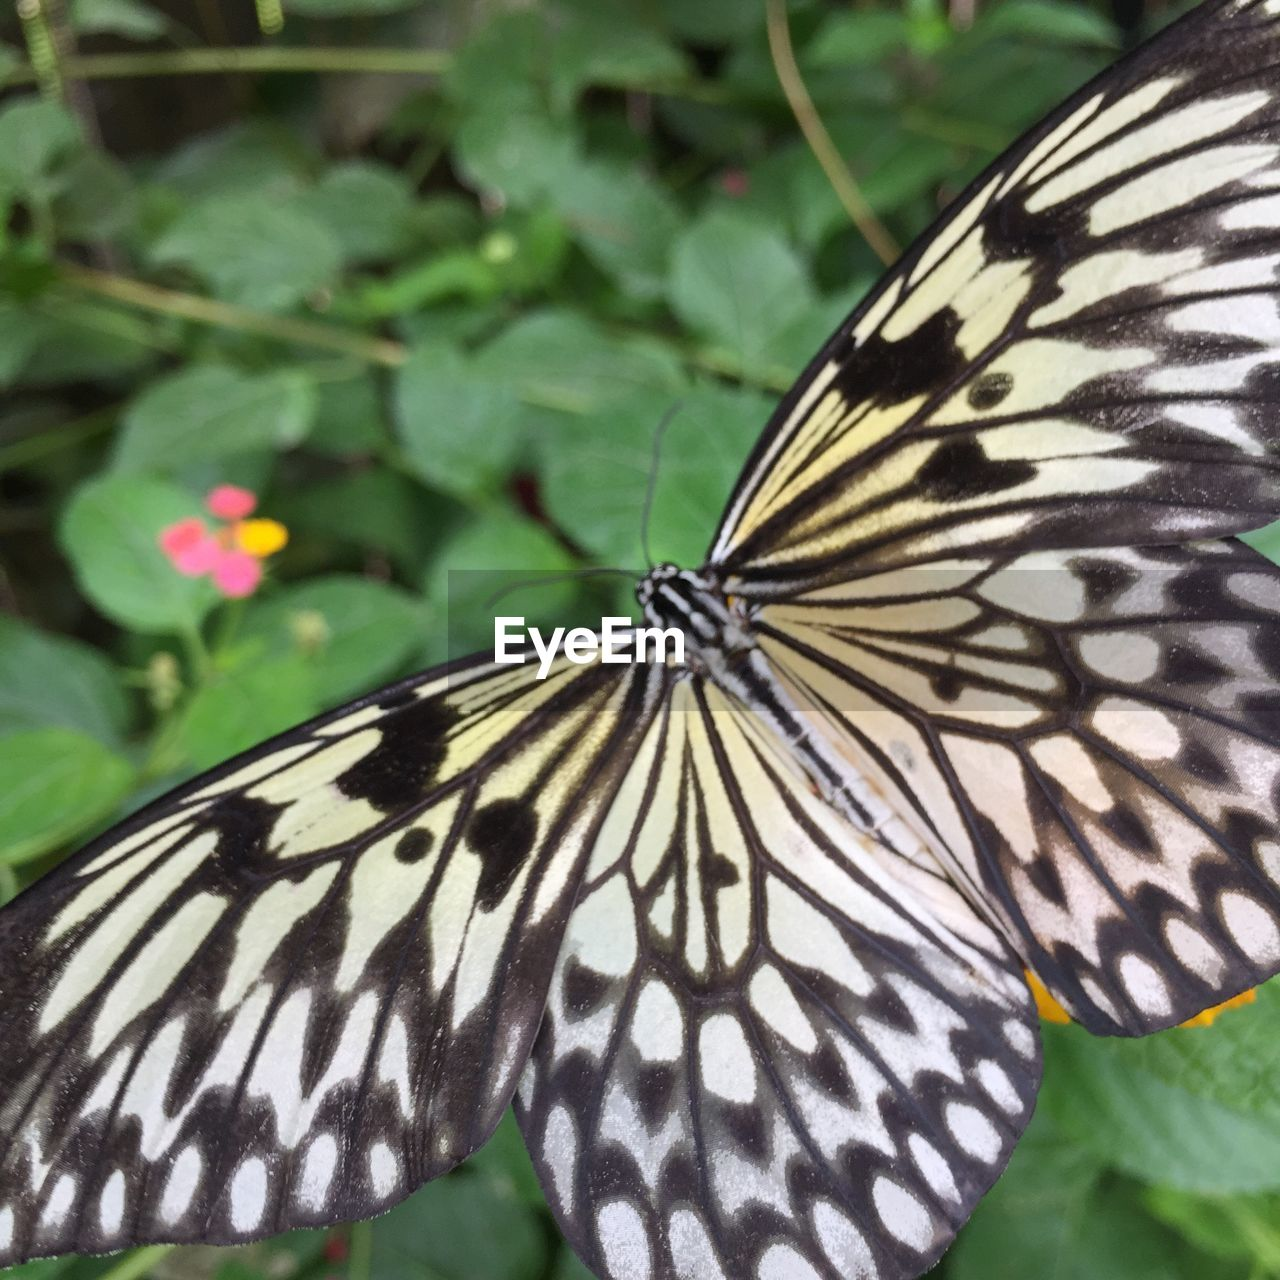 animal, animal themes, animal wildlife, one animal, animals in the wild, animal markings, natural pattern, no people, close-up, nature, day, focus on foreground, animal wing, leaf, striped, animal body part, plant, pattern, plant part, mammal, butterfly - insect, butterfly